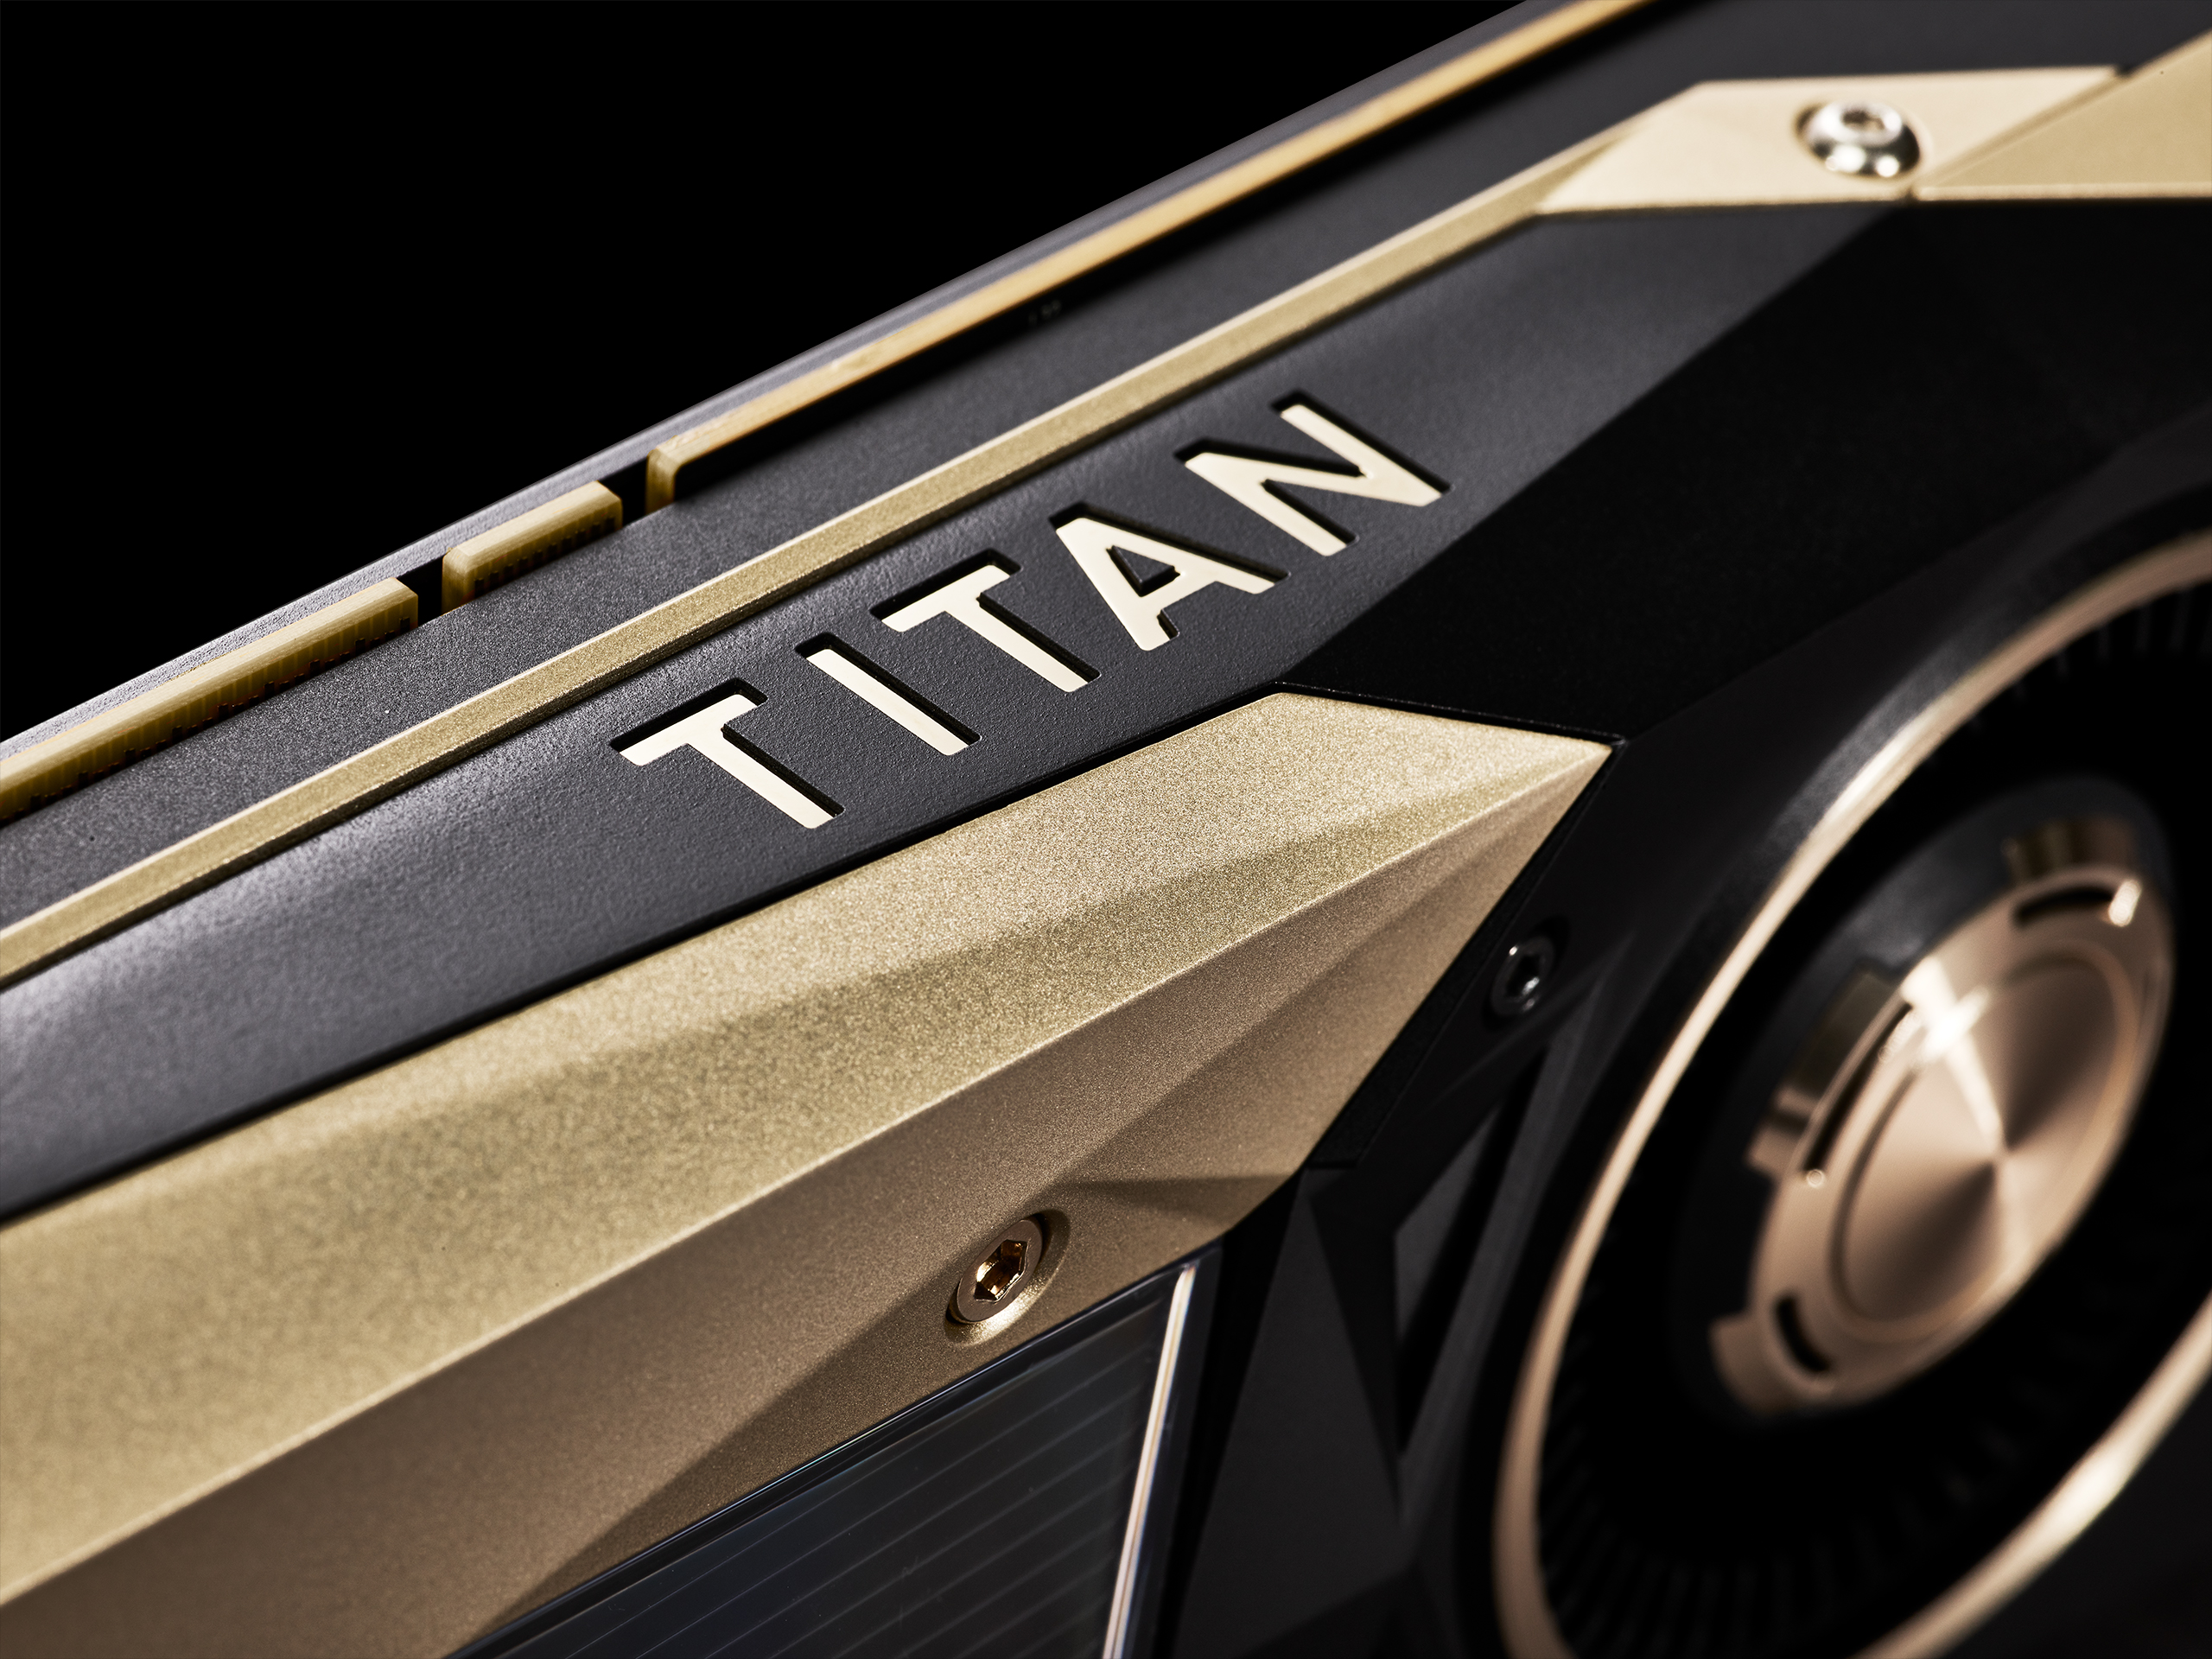 The first NVIDIA Titan V graphics card gaming benchmarks have just appeared and they show the card to be on a whole new level.